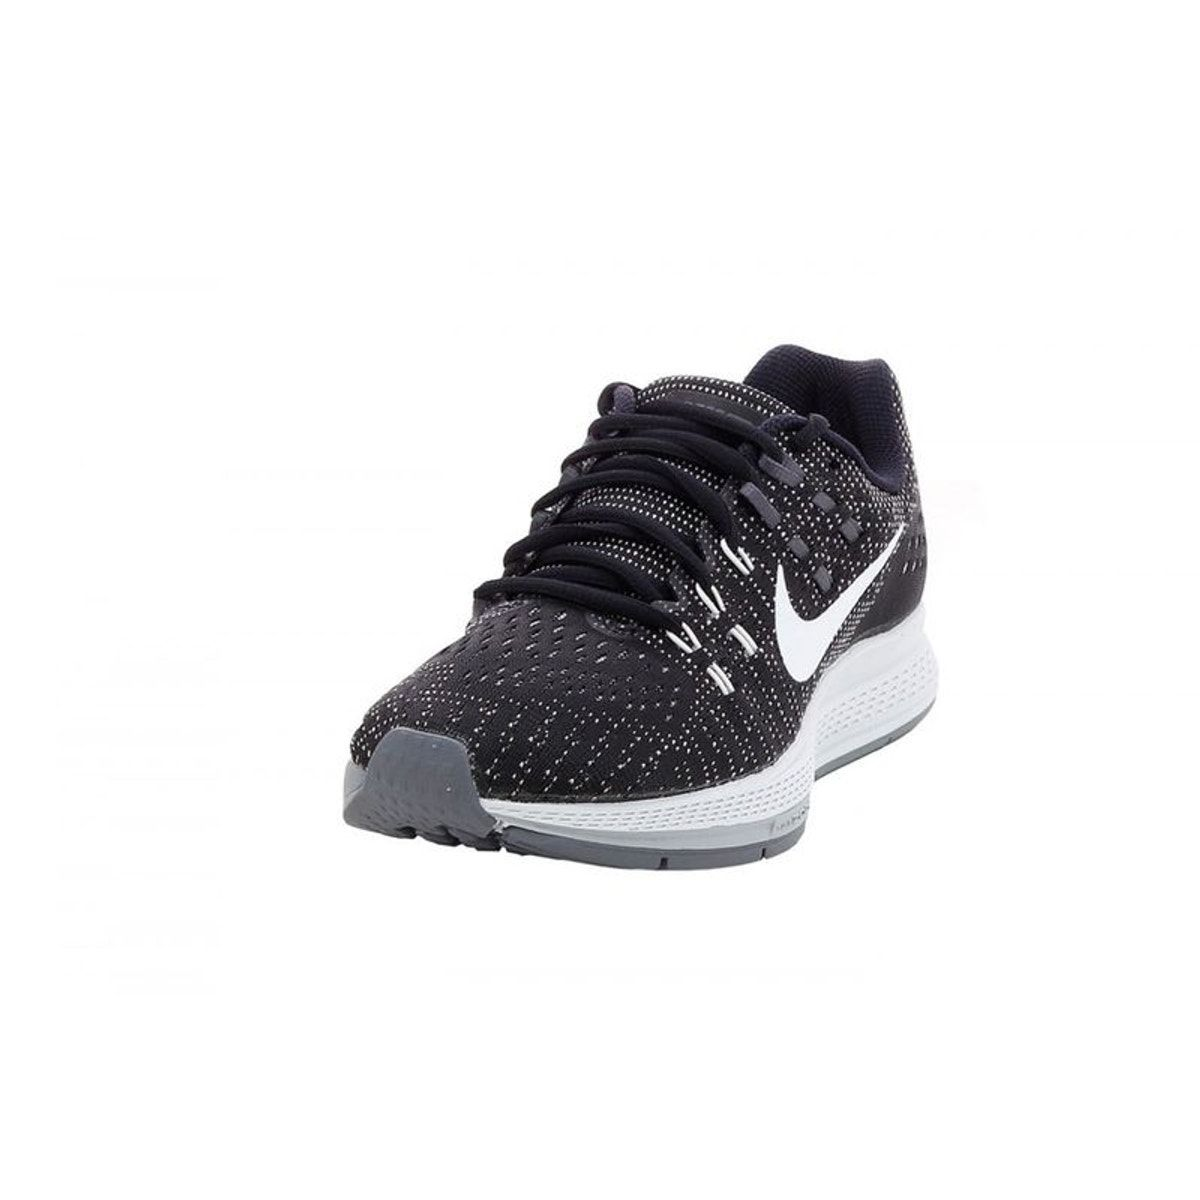 Structure Basket Nike 806584 Zoom 001 19 Air Taille38 thrQsd